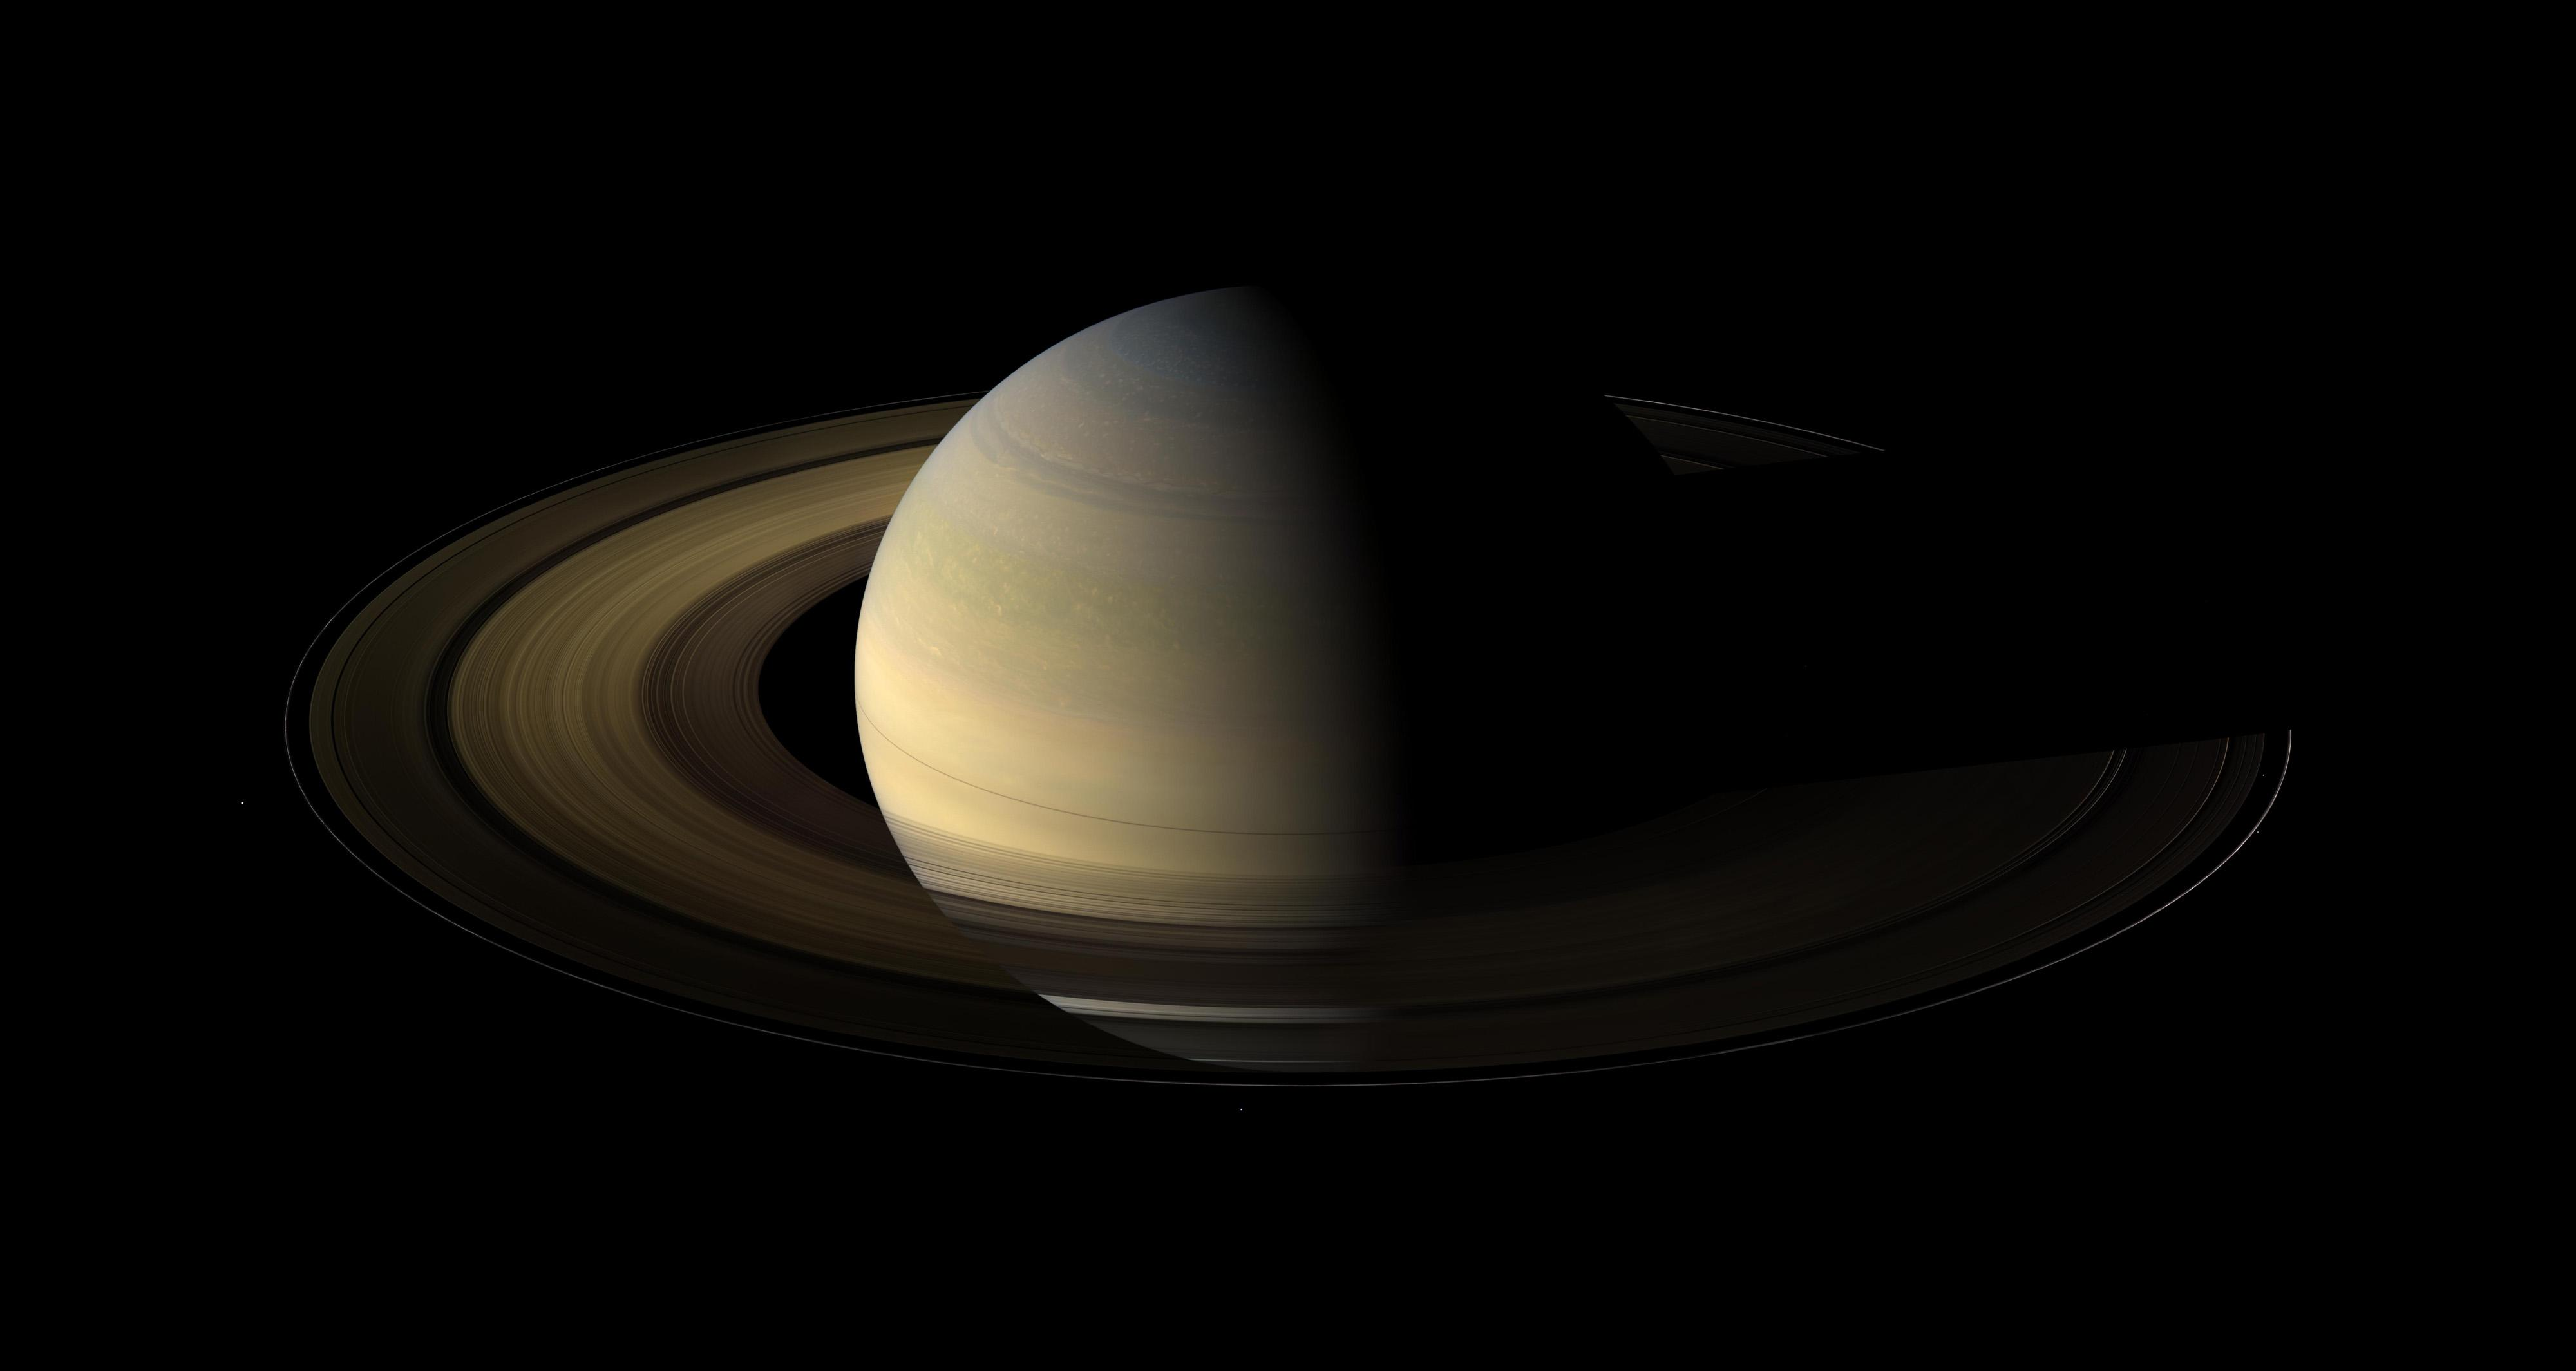 Of planet earth as a point of light between the icy rings of saturn - 394218main_pia11667_full Jpg Cassini S View Of Saturn